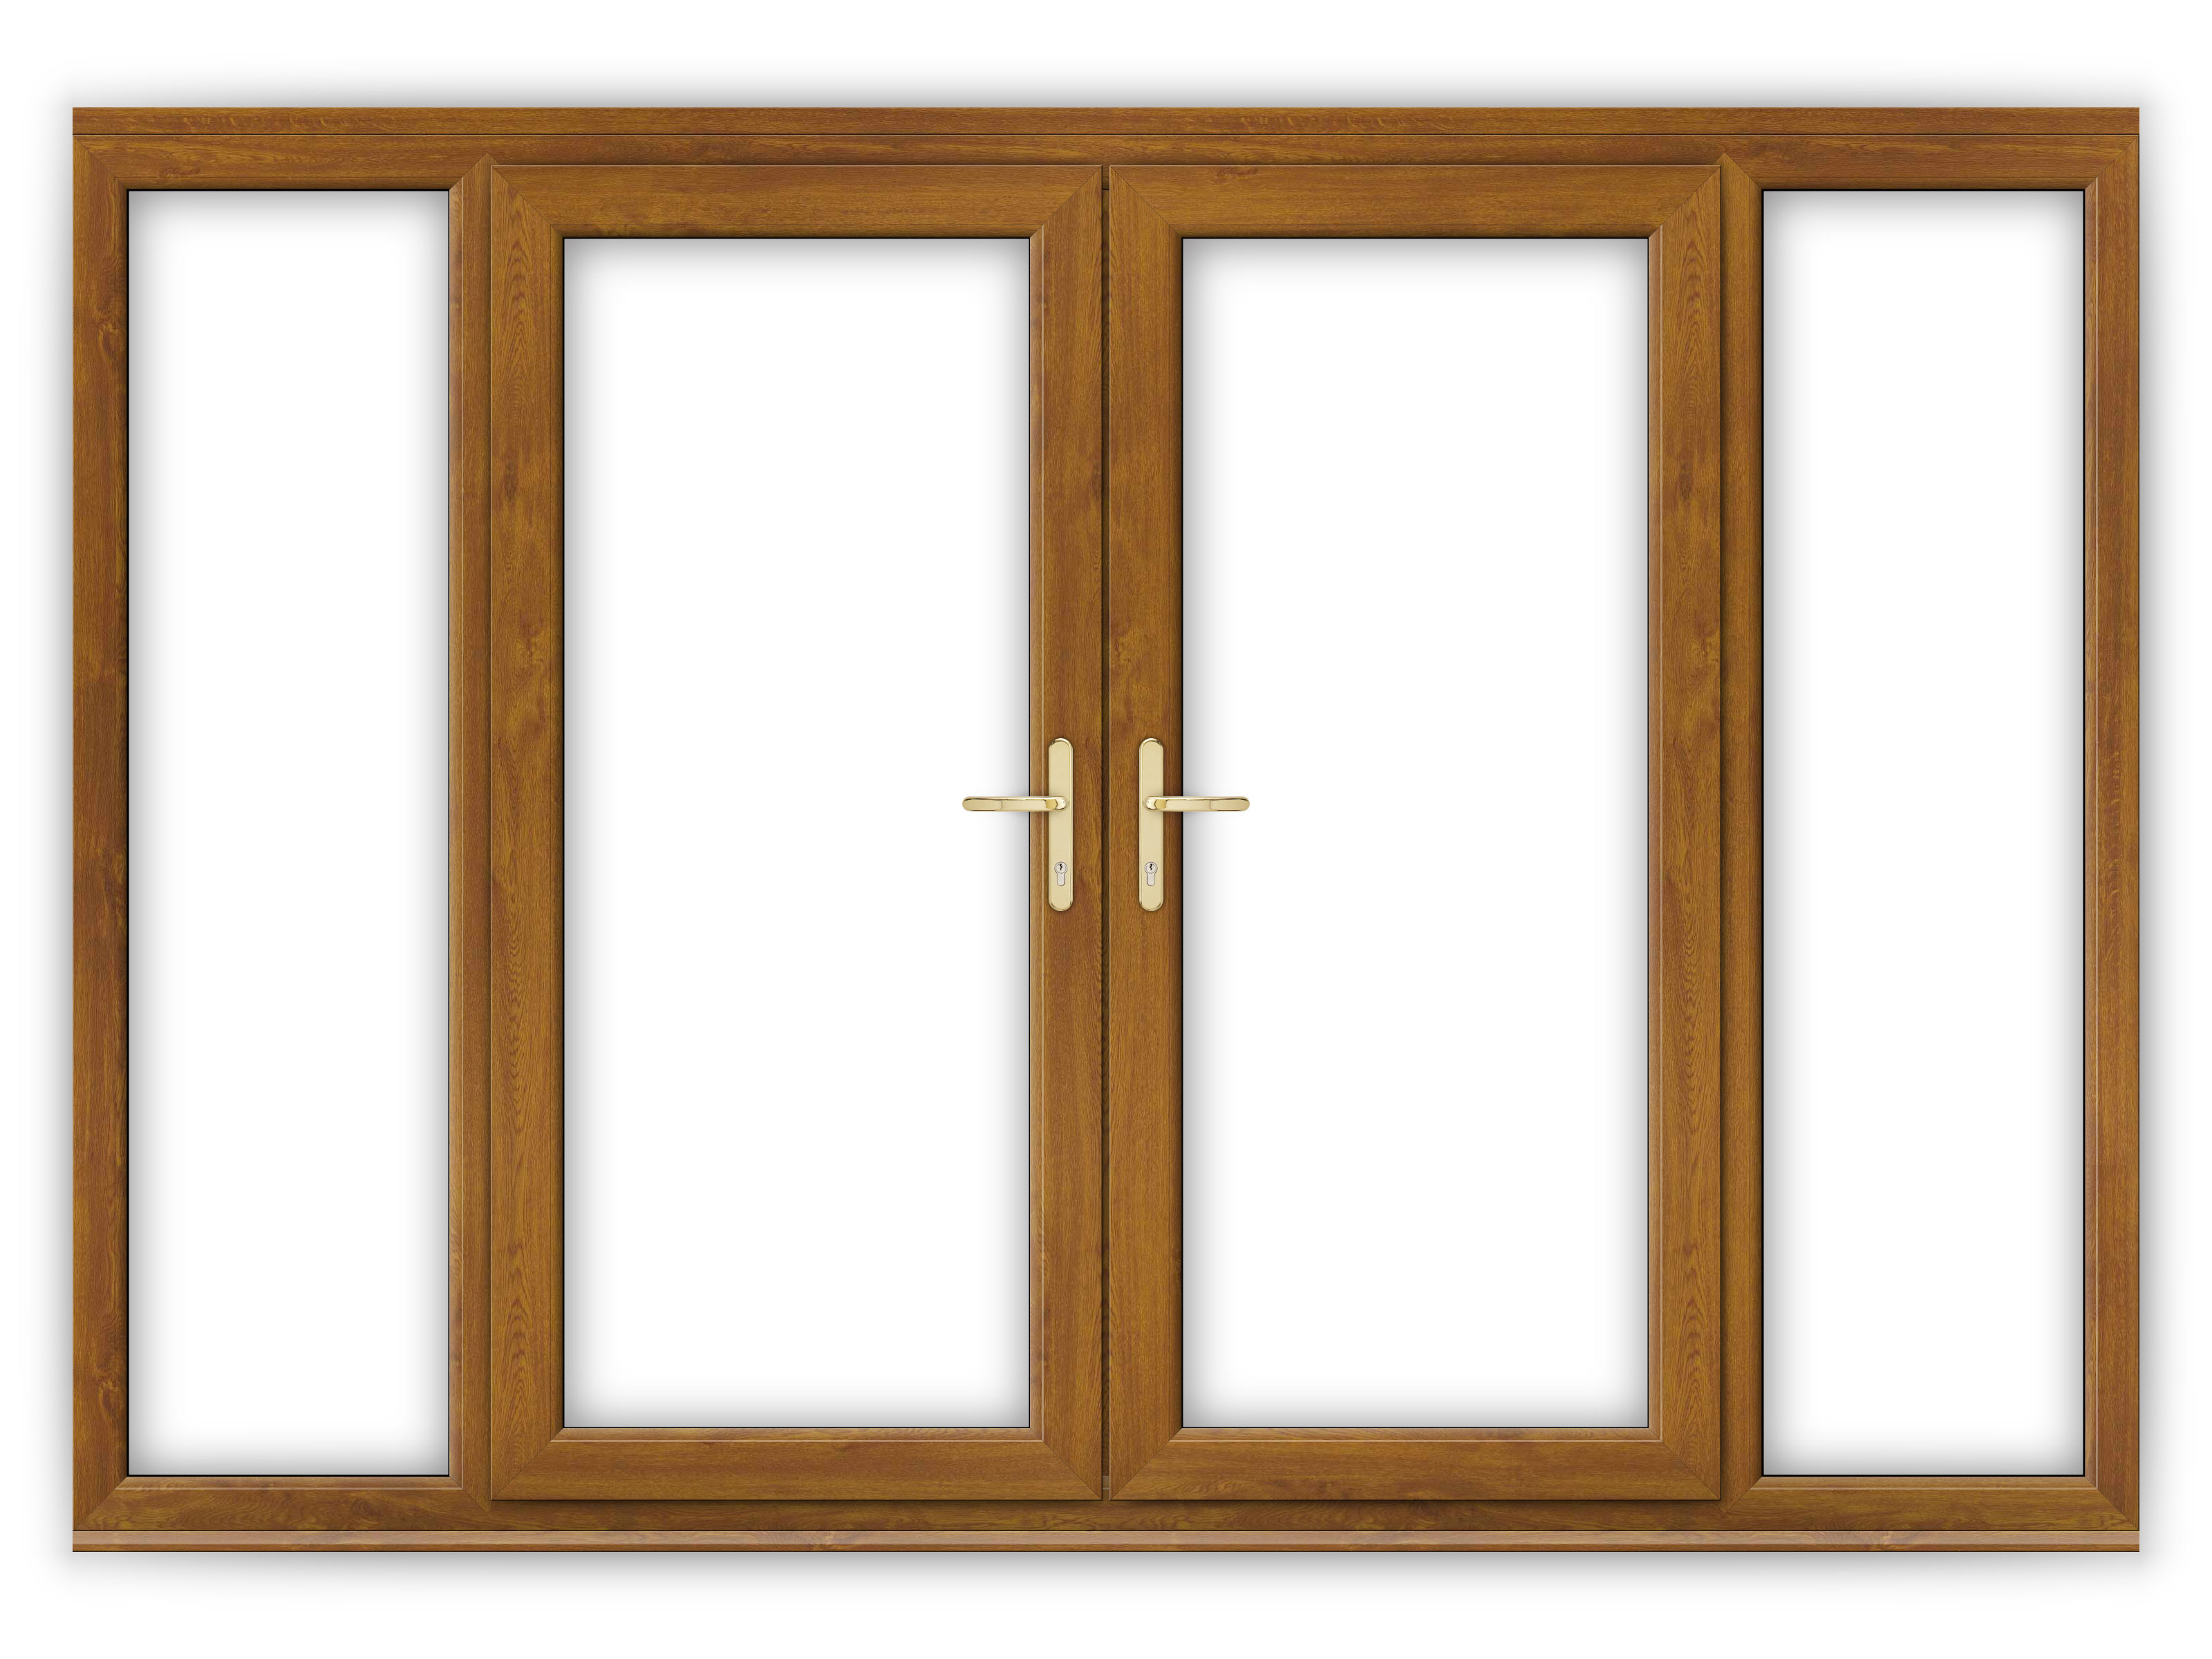 6ft golden oak upvc french doors with wide side panels for 5 foot wide french patio doors